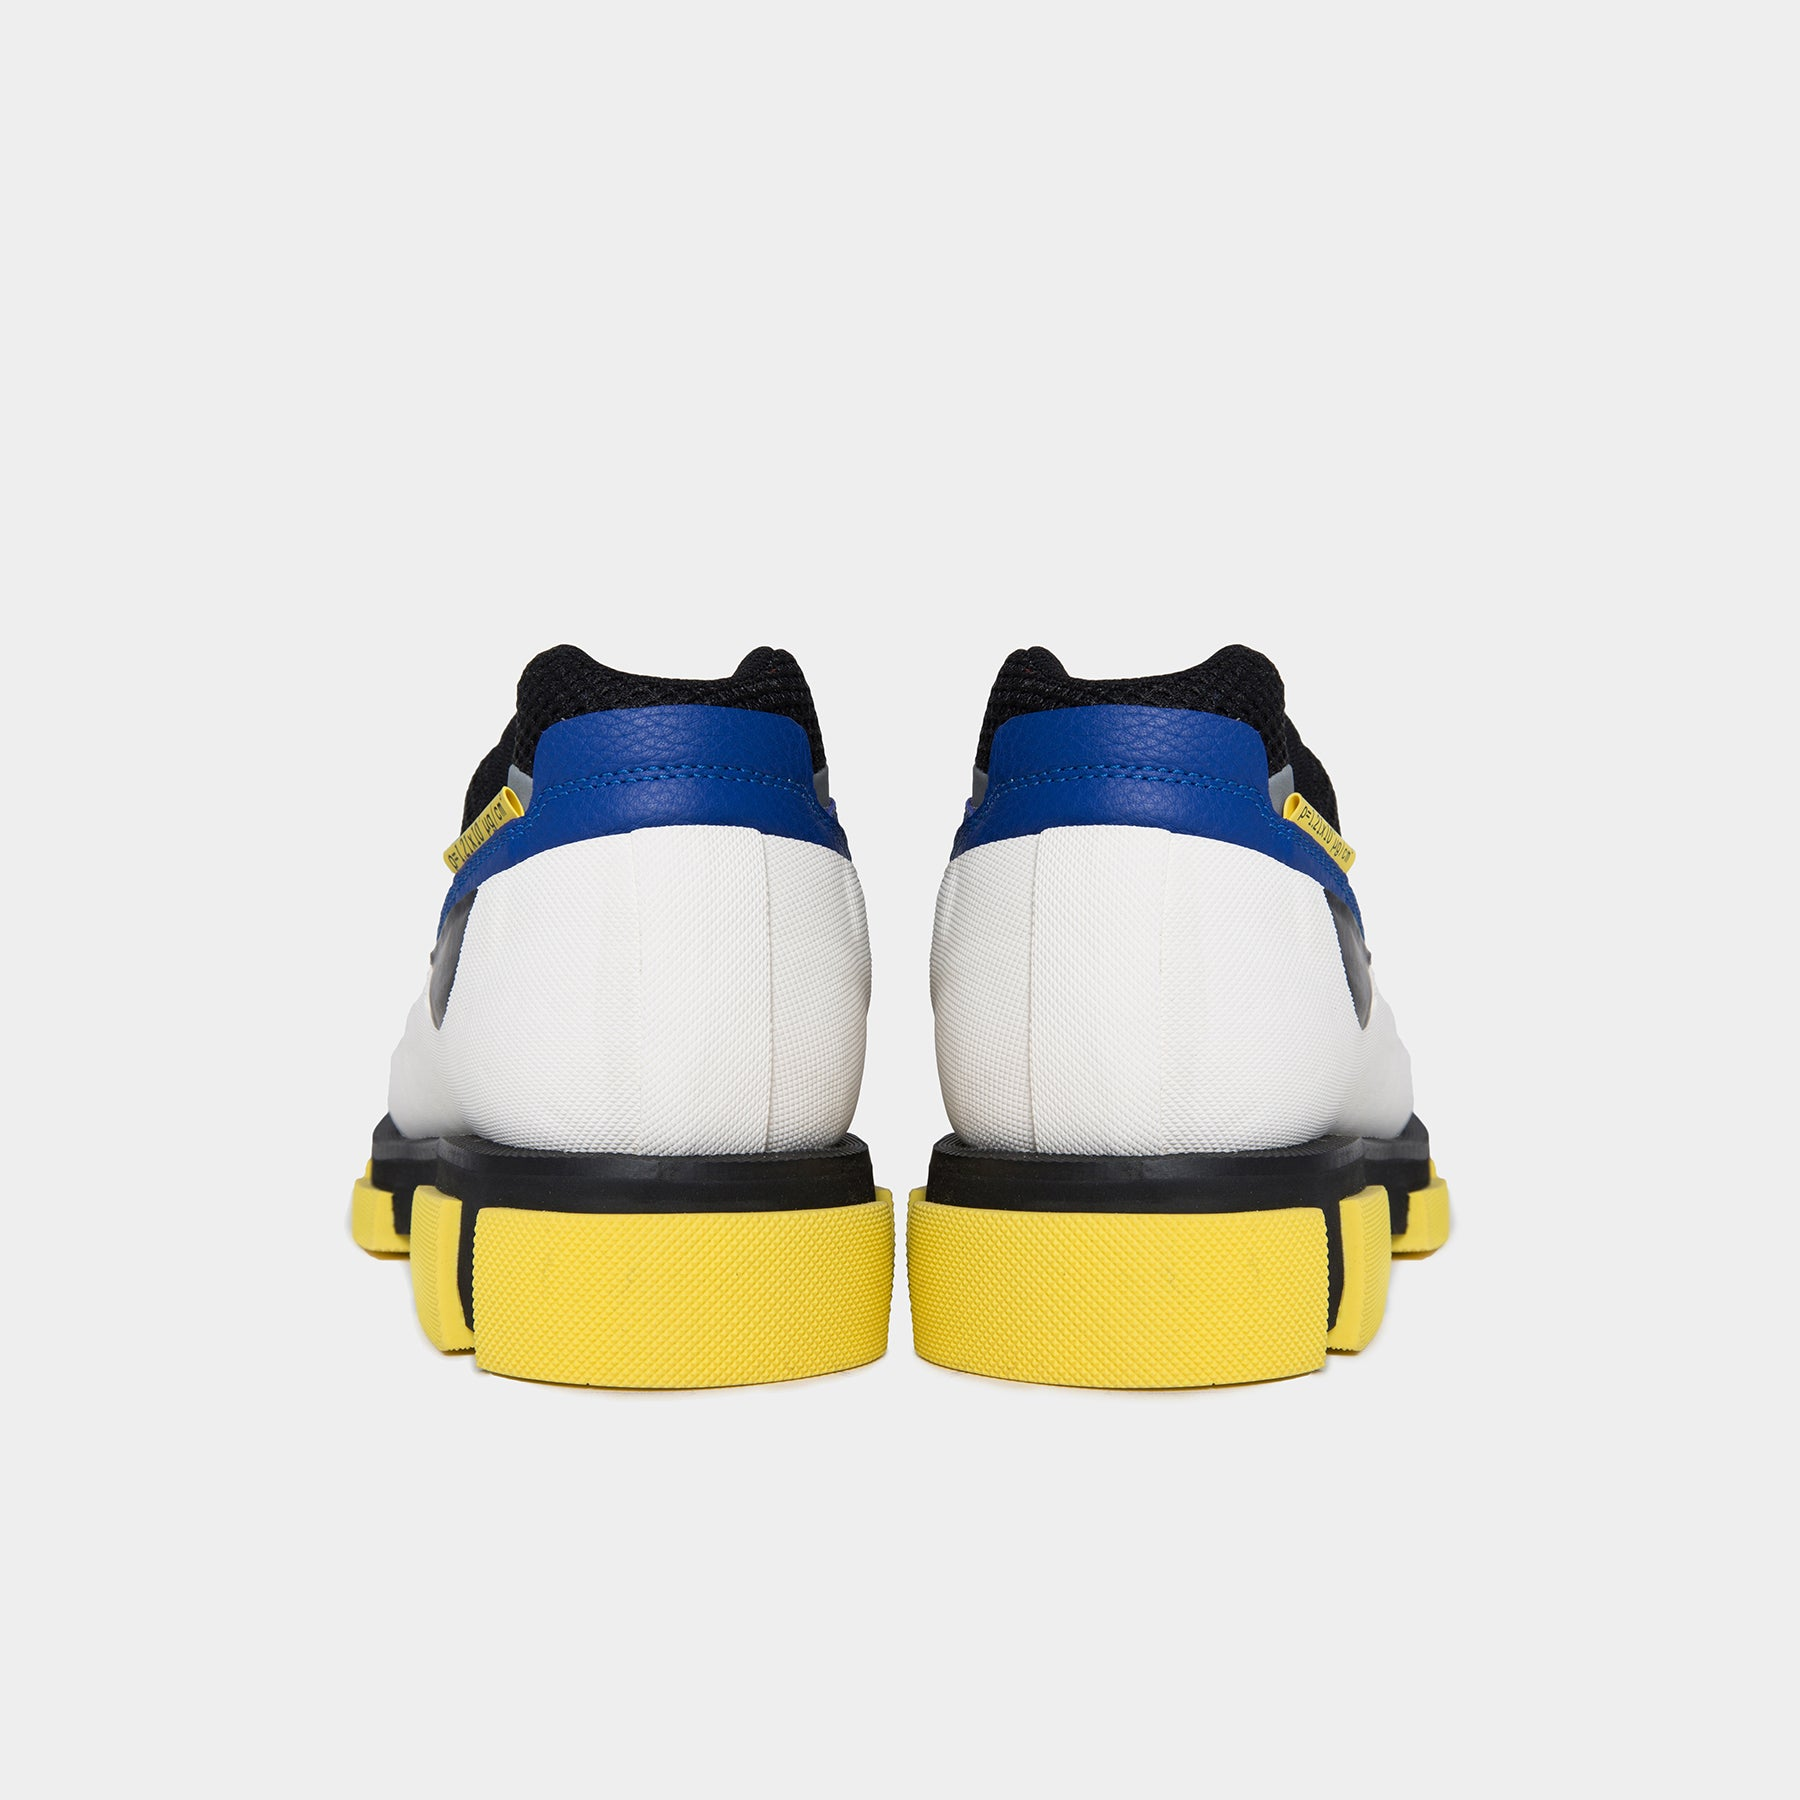 Gao Runner (White/Yellow) Shoes BOTH - NOLM - Clothes Online - nolmau.com - Sydney-Australia Online Shopping